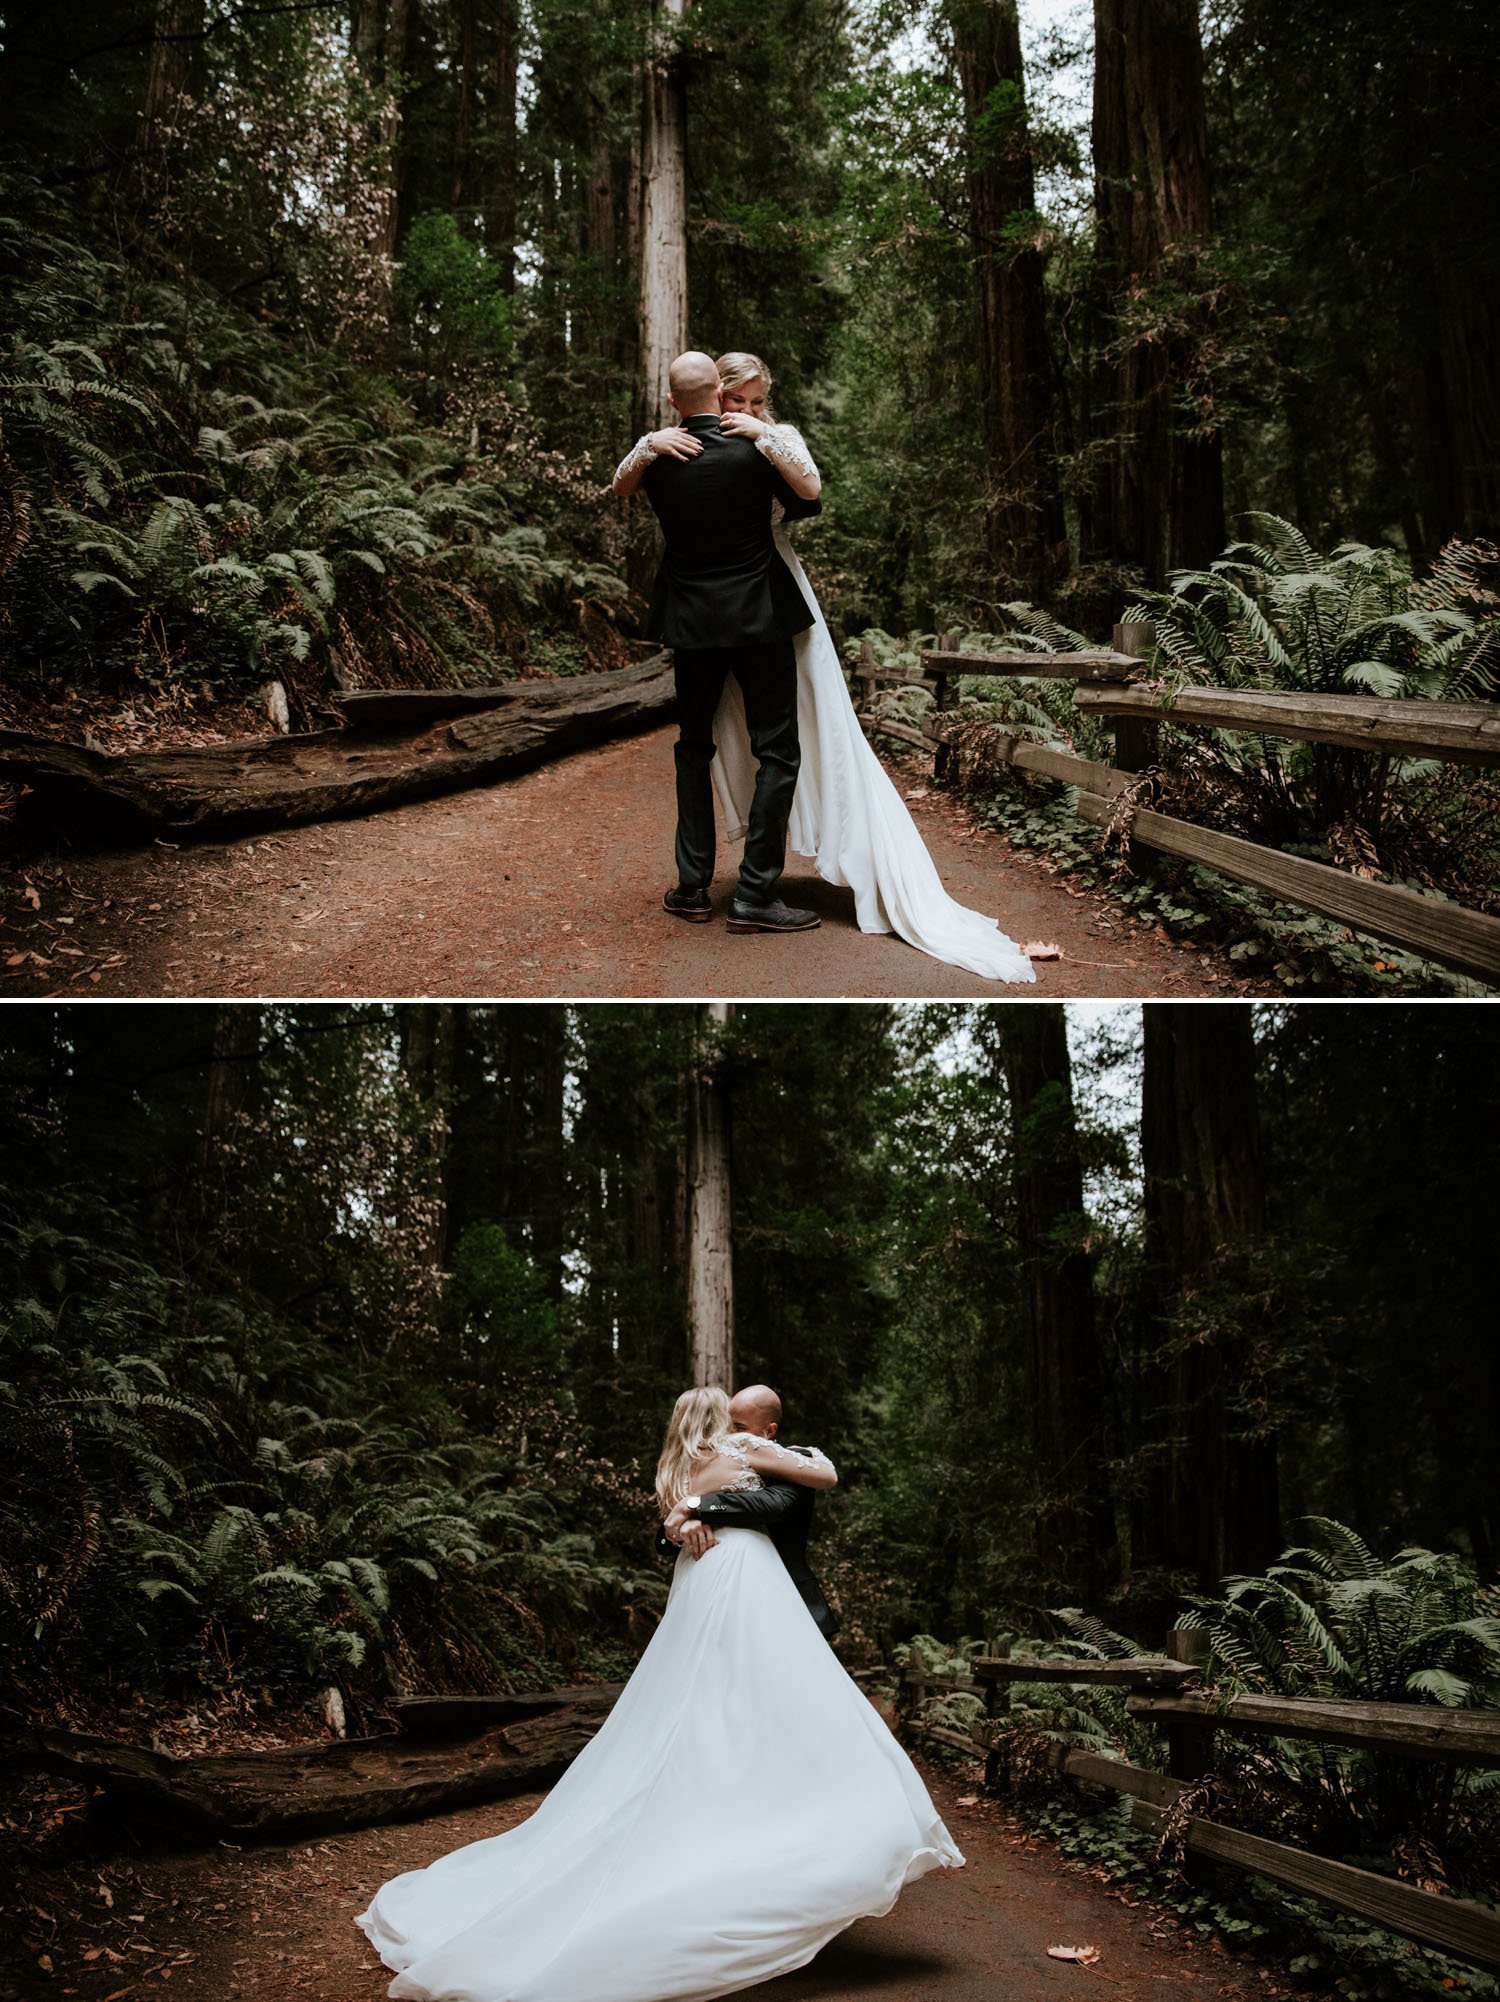 Forest wedding in San Francisco Muir Woods by Paige Nelson